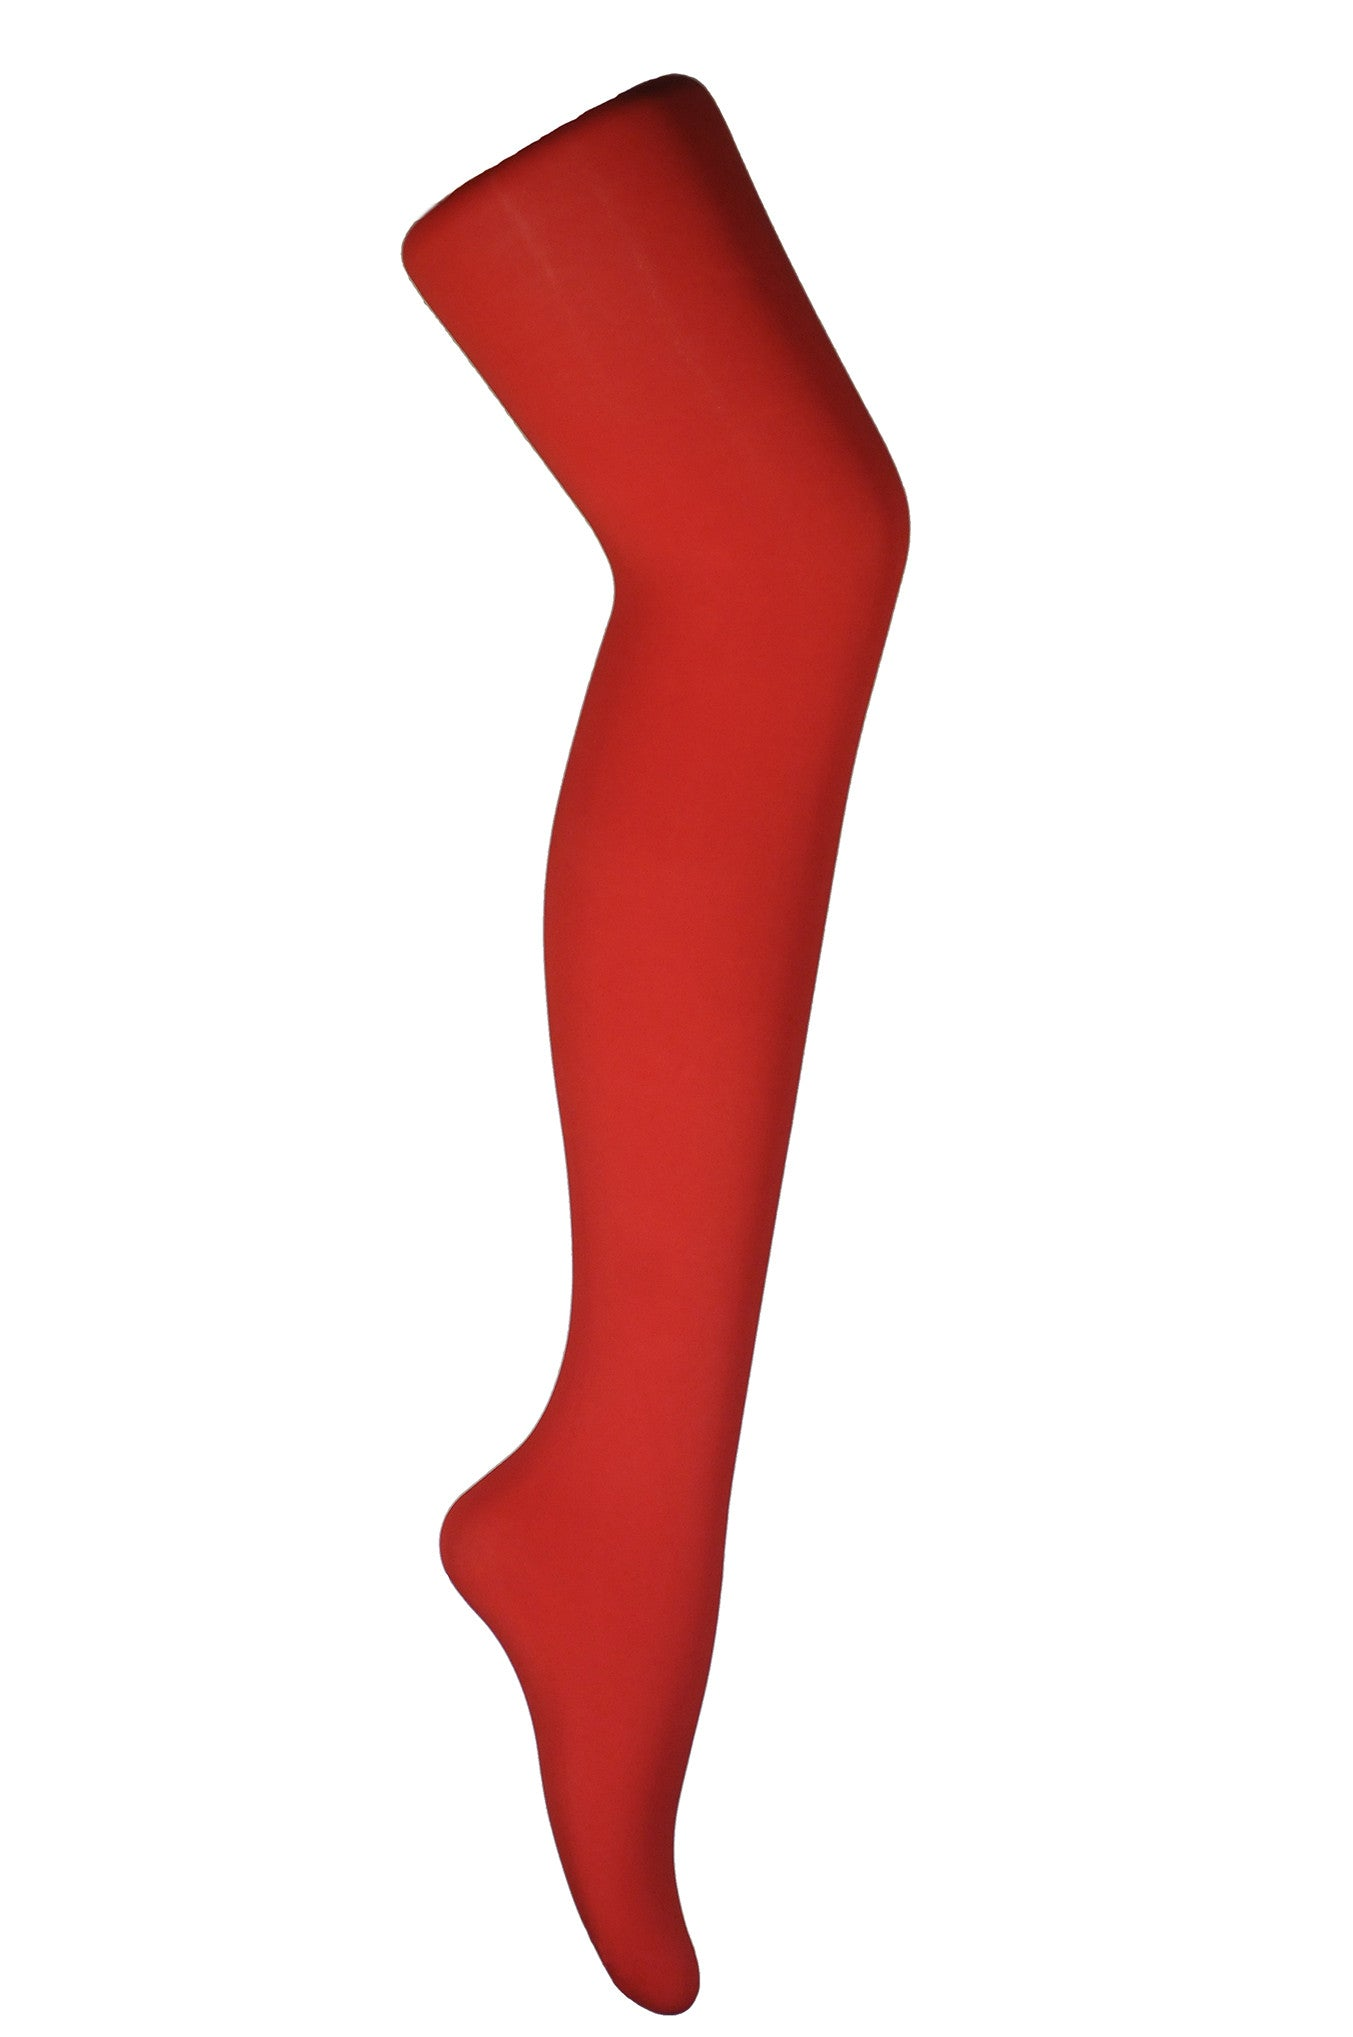 Flo Red 80 Denier Solid Colour Full Coverage Tights by Pamela mann UK on Tights Etc South Africa